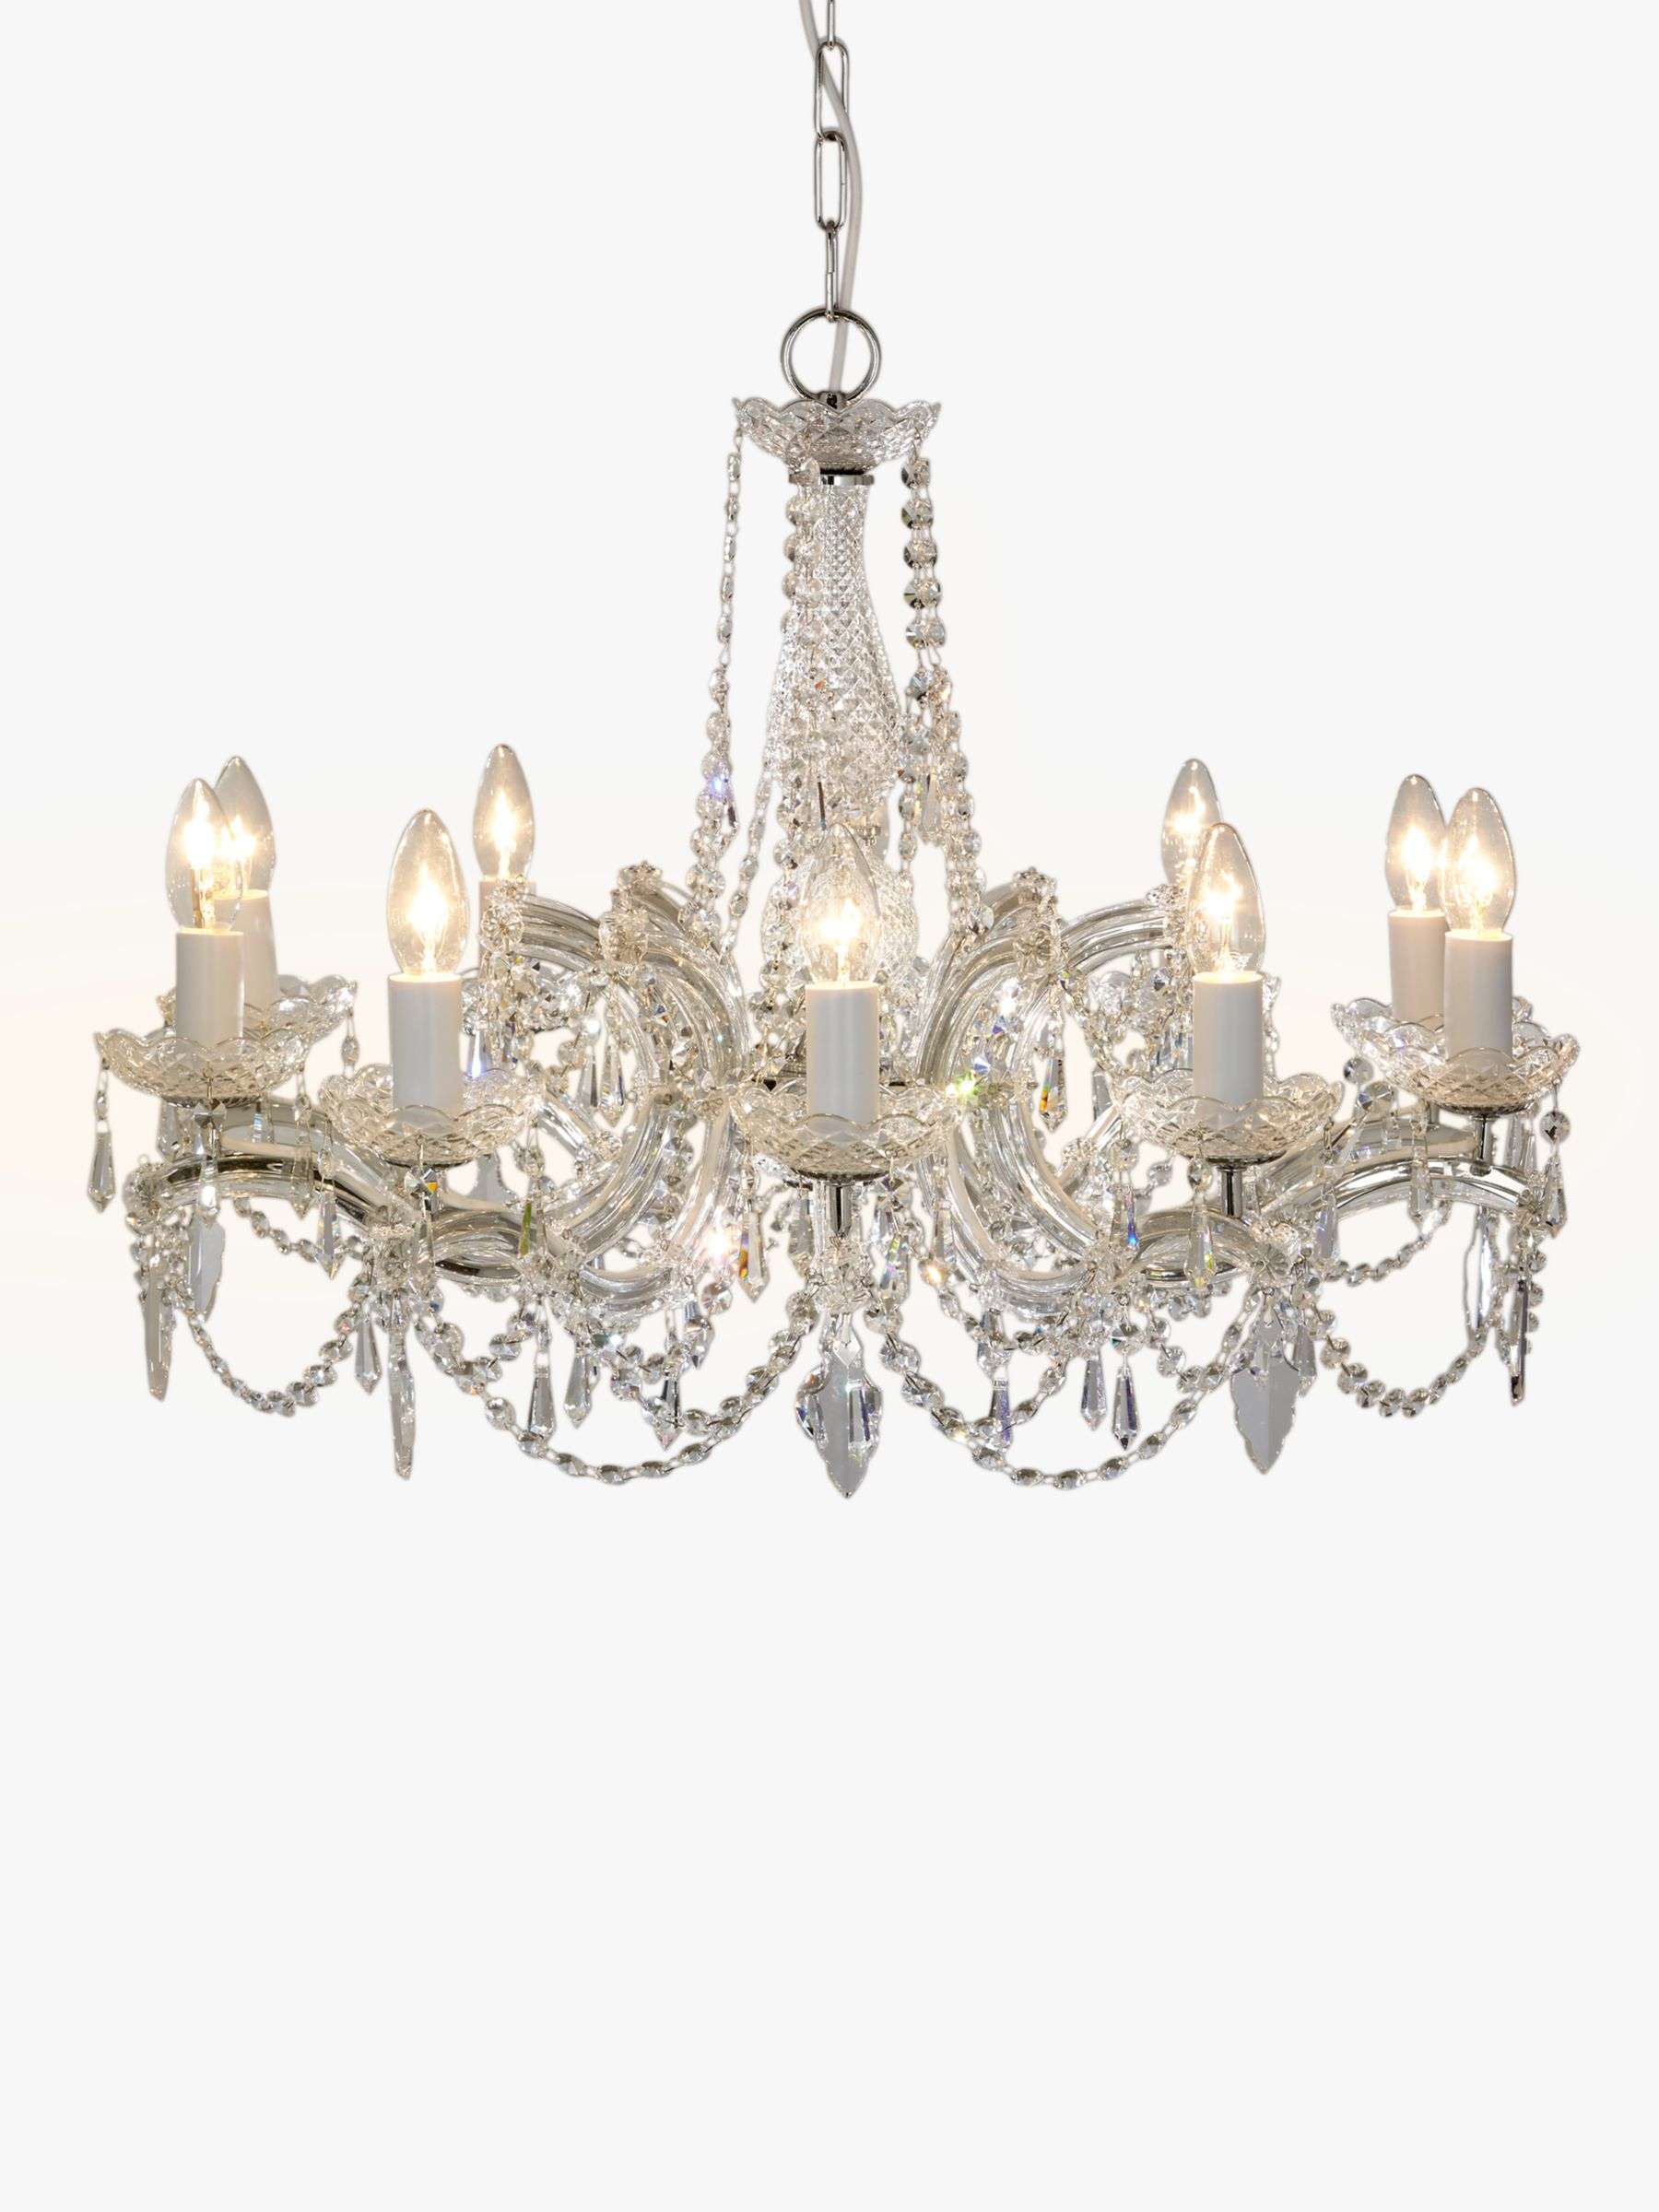 Impex Impex Marie Theresa Chandelier, 10 Arm, Crystal